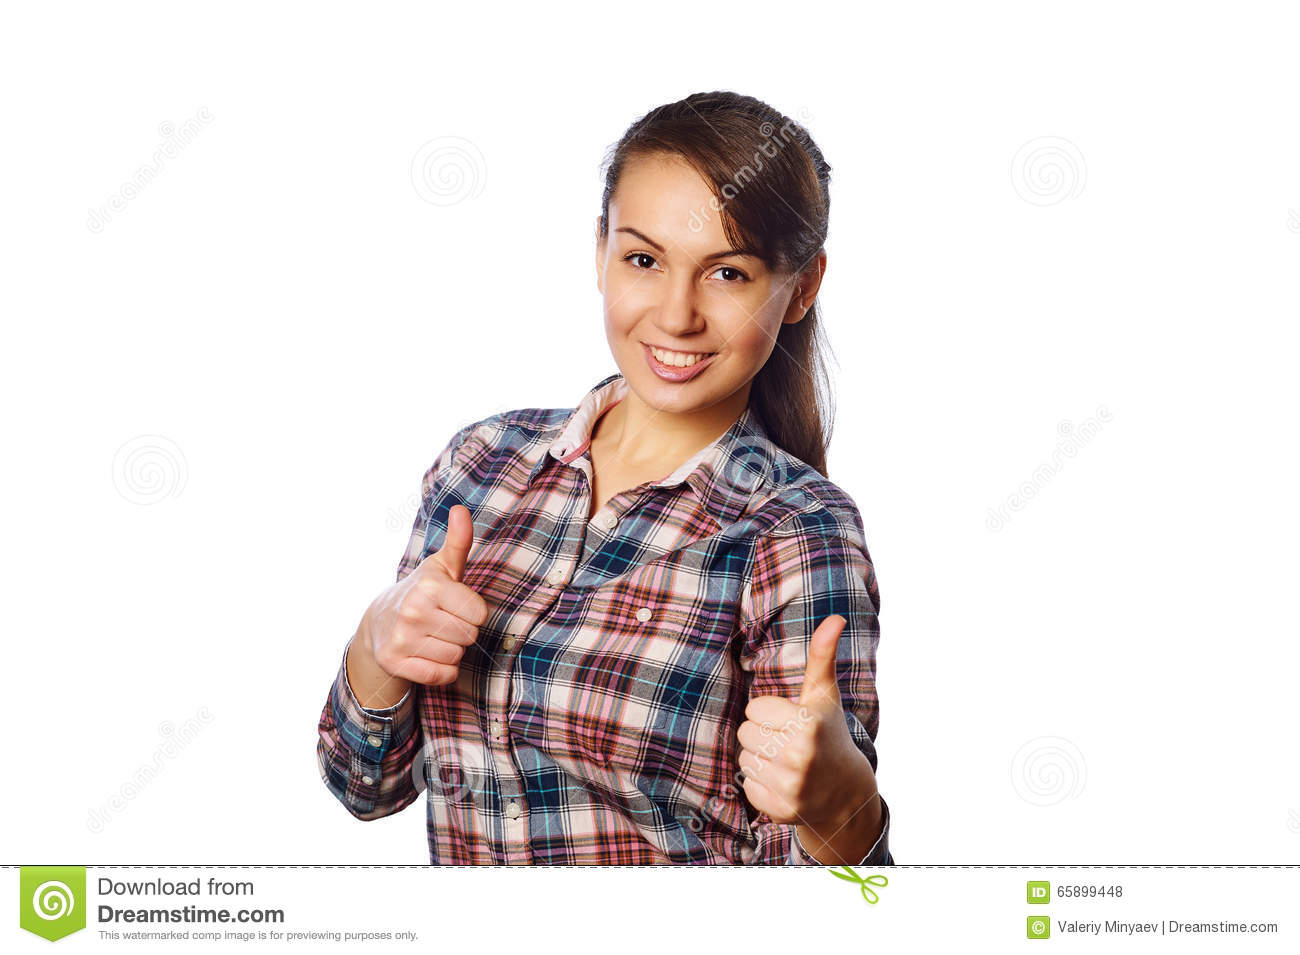 Cheerful young girl in checkered shirt showing thumbs up with both hands over white background